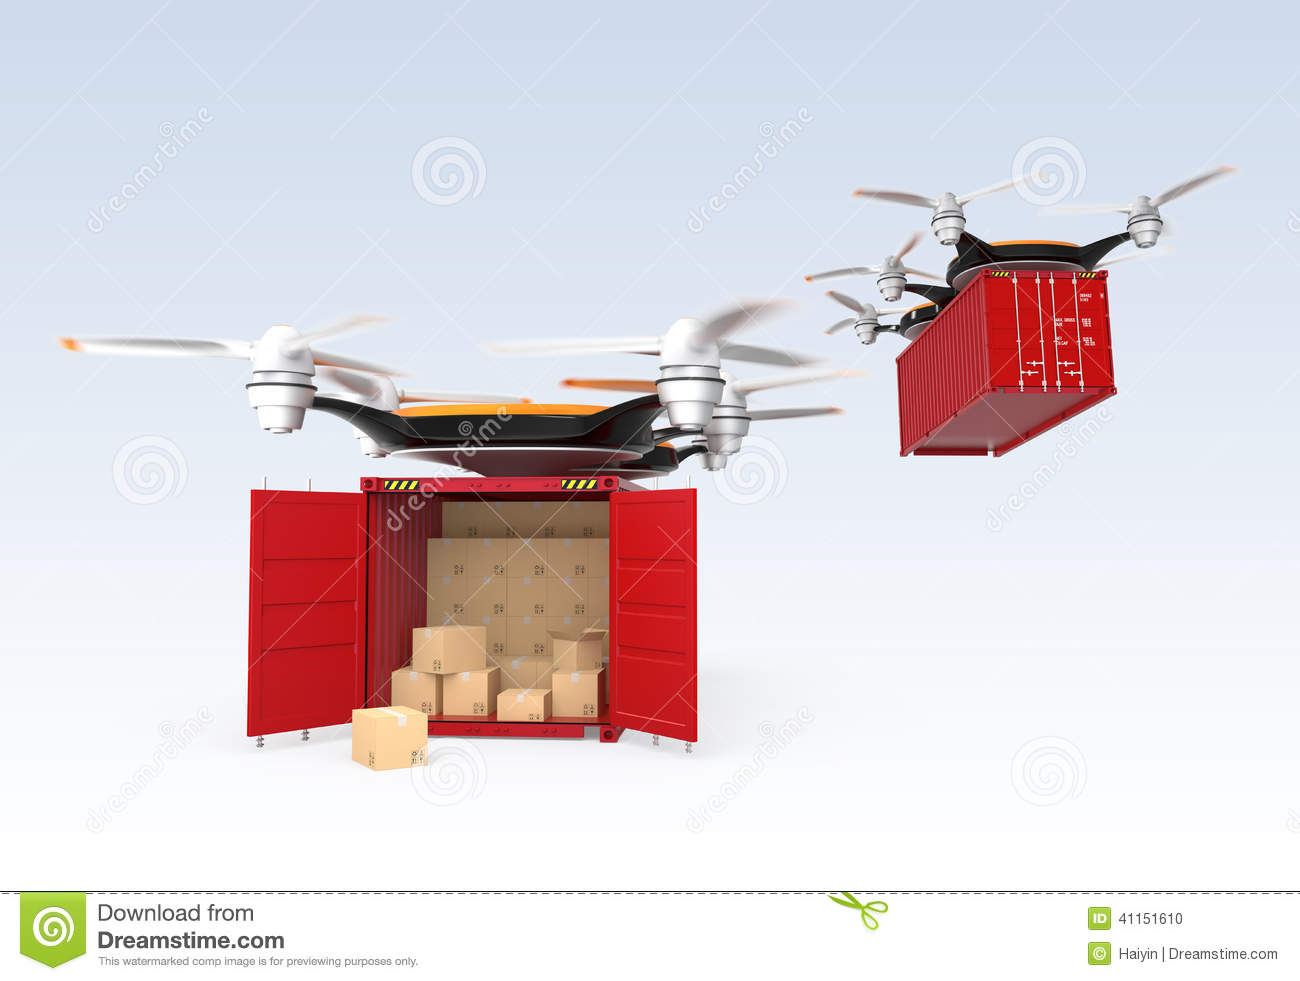 multirotor helicopter with Stock Photo Two Drone Carrying Cargo Containers Drones Container One Container Opened Concept Fast Delivery Image41151610 on E Volo Vc200 Le Multirotor Vert likewise Tricopter in addition Mind Blowing Drone Innovations furthermore Stock Photo Drone Carrying Pizza Fast Food Delivery Concept Image46632013 together with Tarot X4 Quadcopter Frame Set.